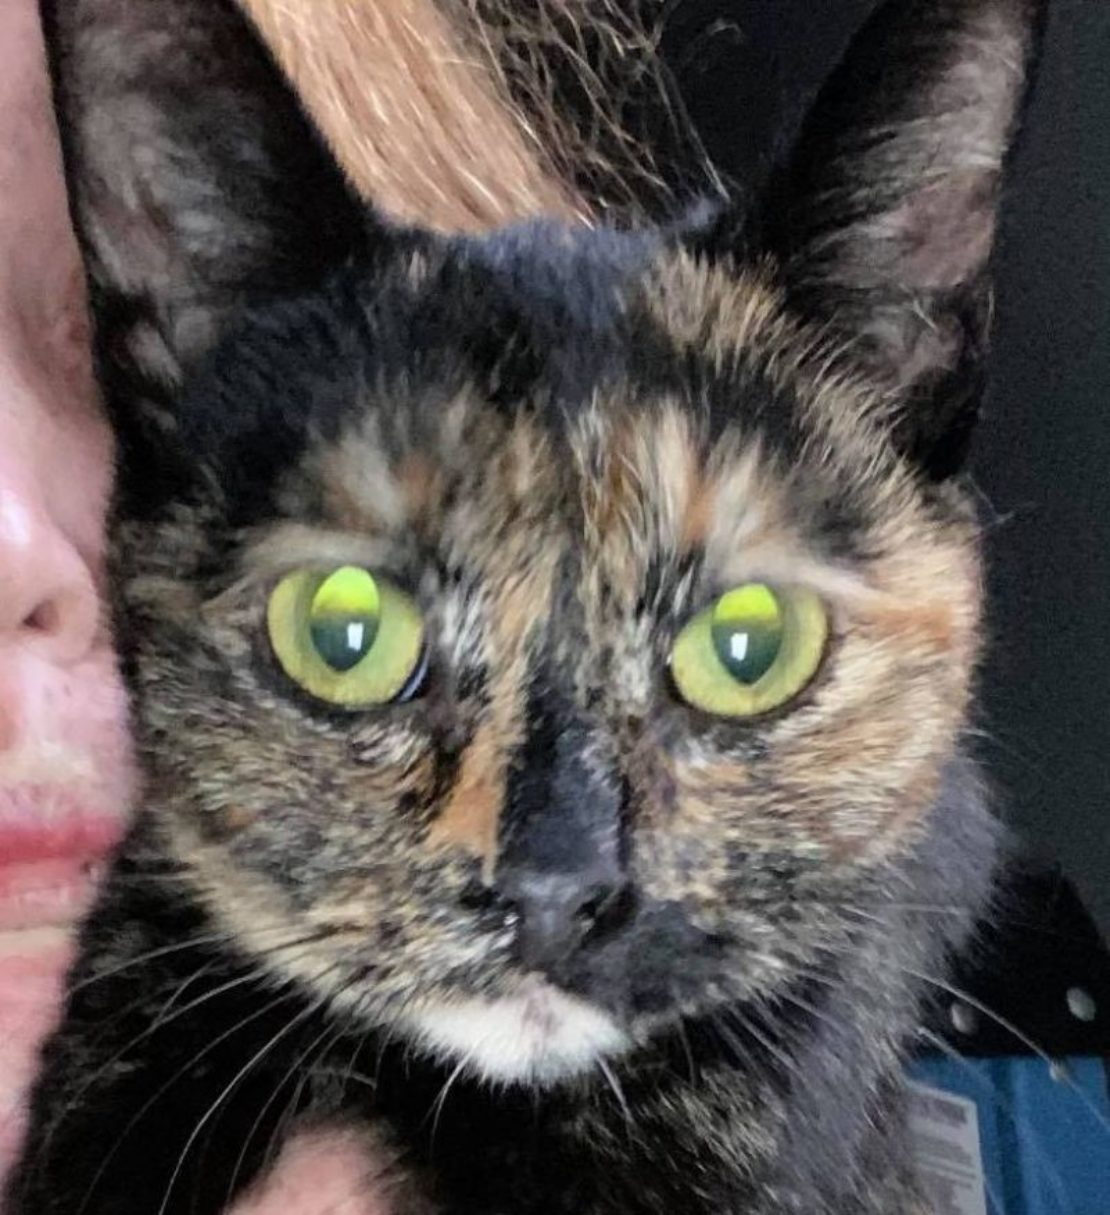 calico cat face with eerie green eyes, pupils dark on top and lighter on bottom.